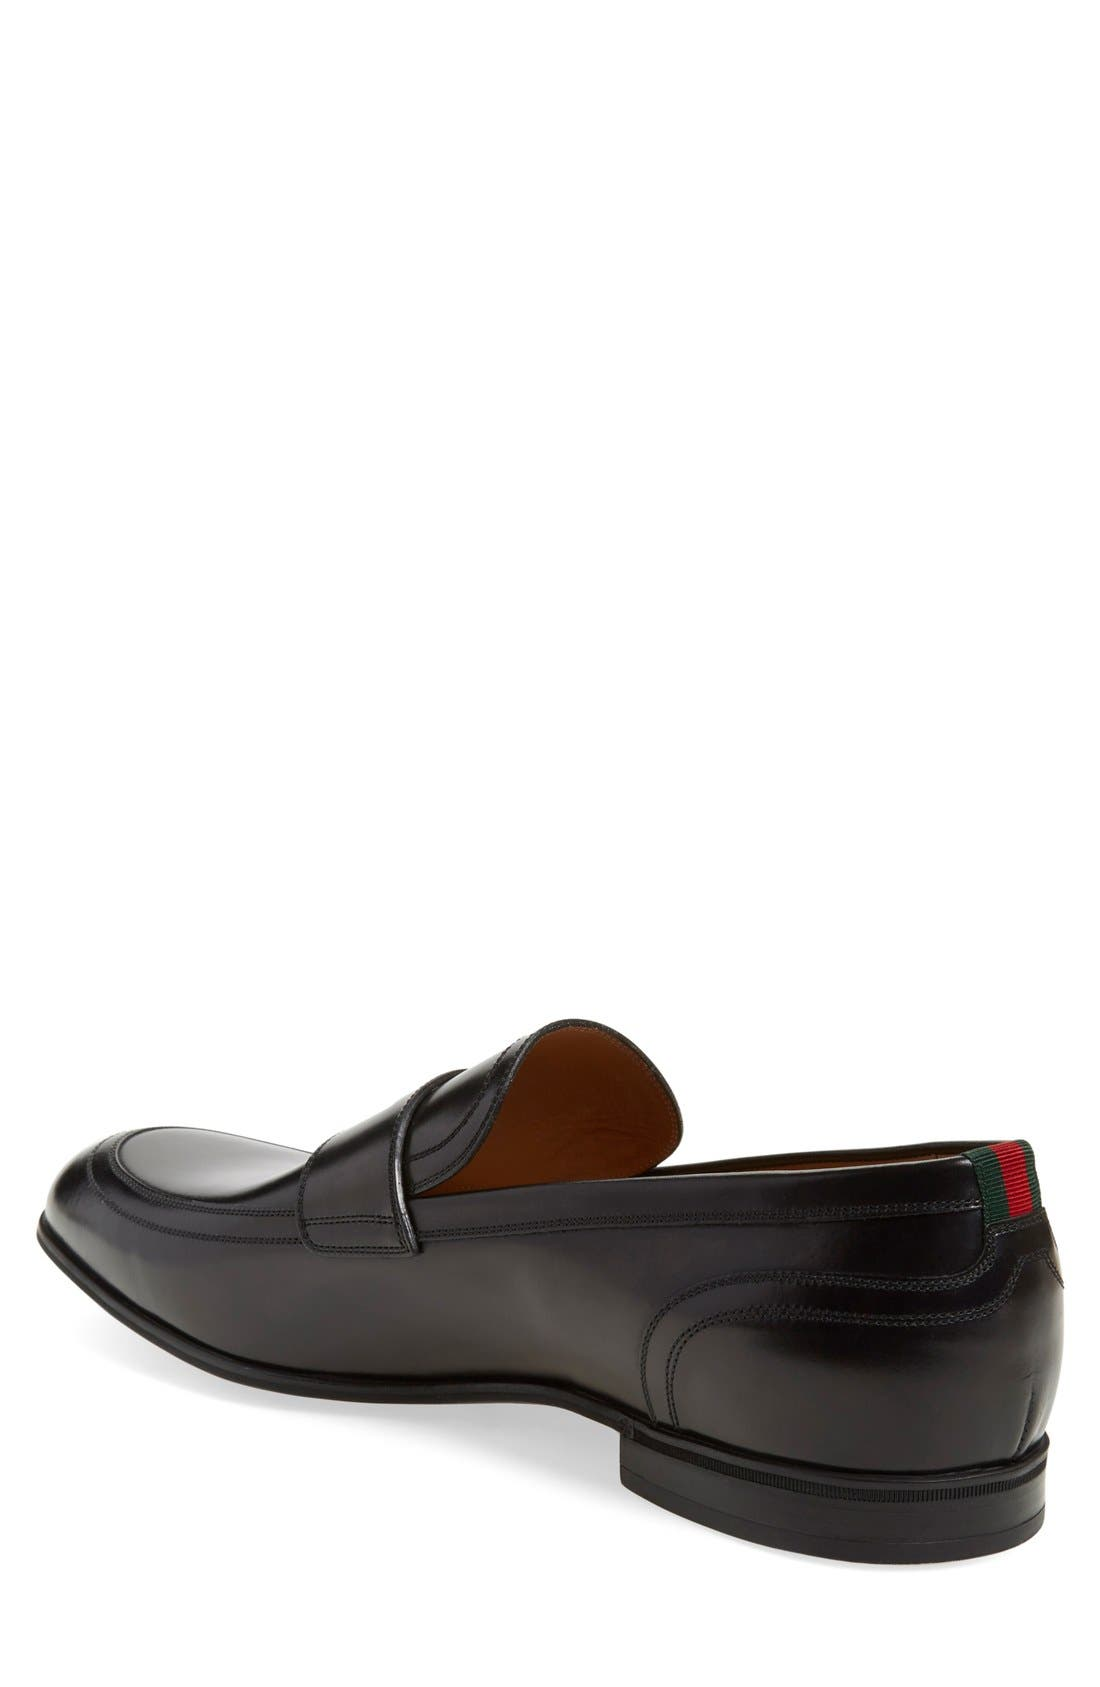 Ravello Penny Loafer,                             Alternate thumbnail 2, color,